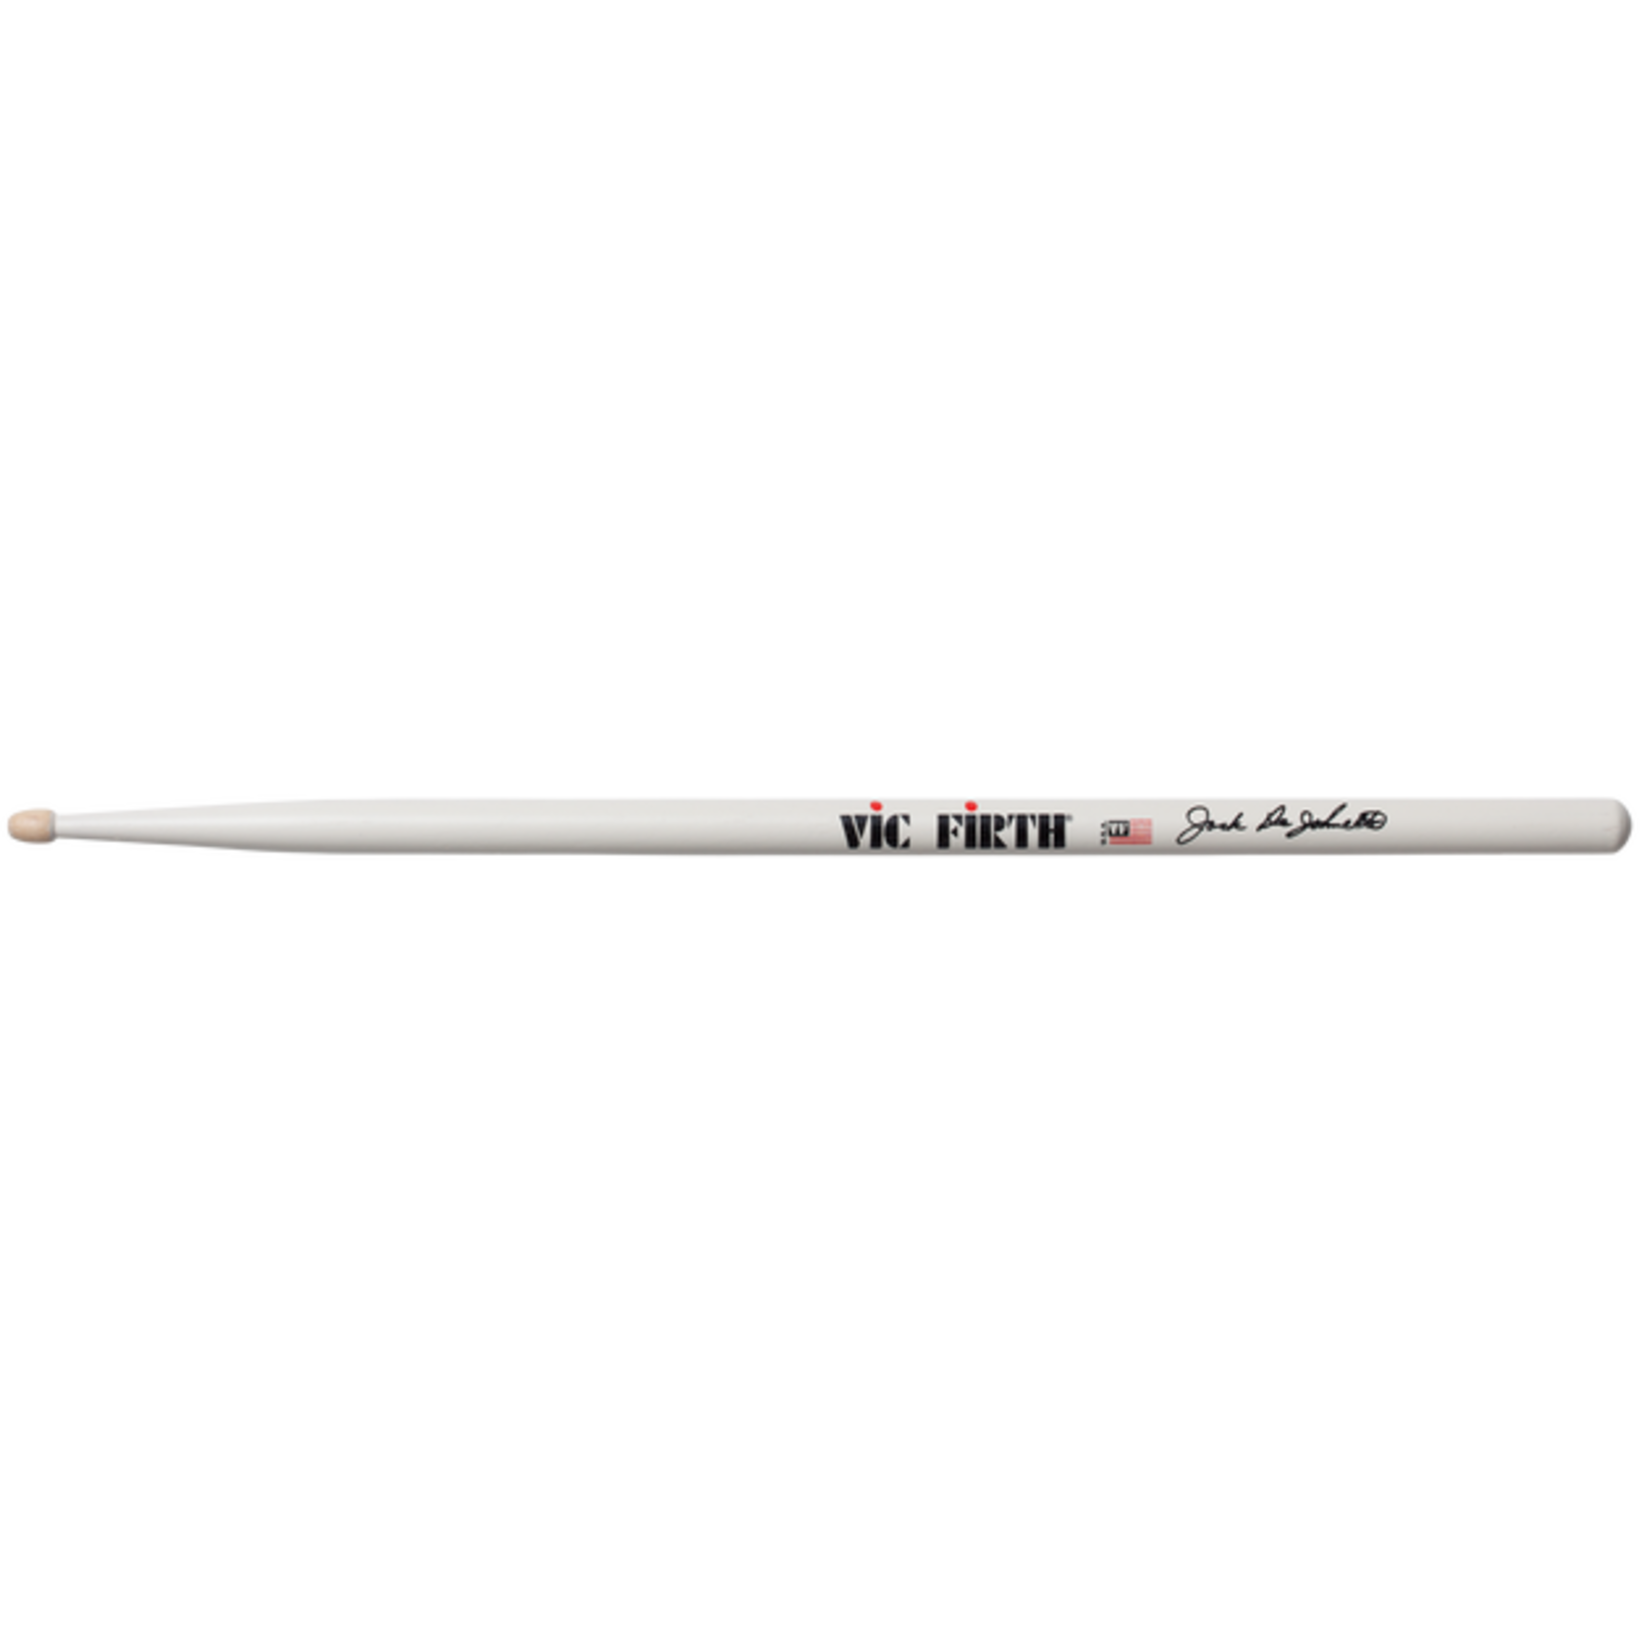 Vic Firth VIC FIRTH SIGNATURE SERIES JACK DEJOHNETTE WOOD TIP (PAIR)